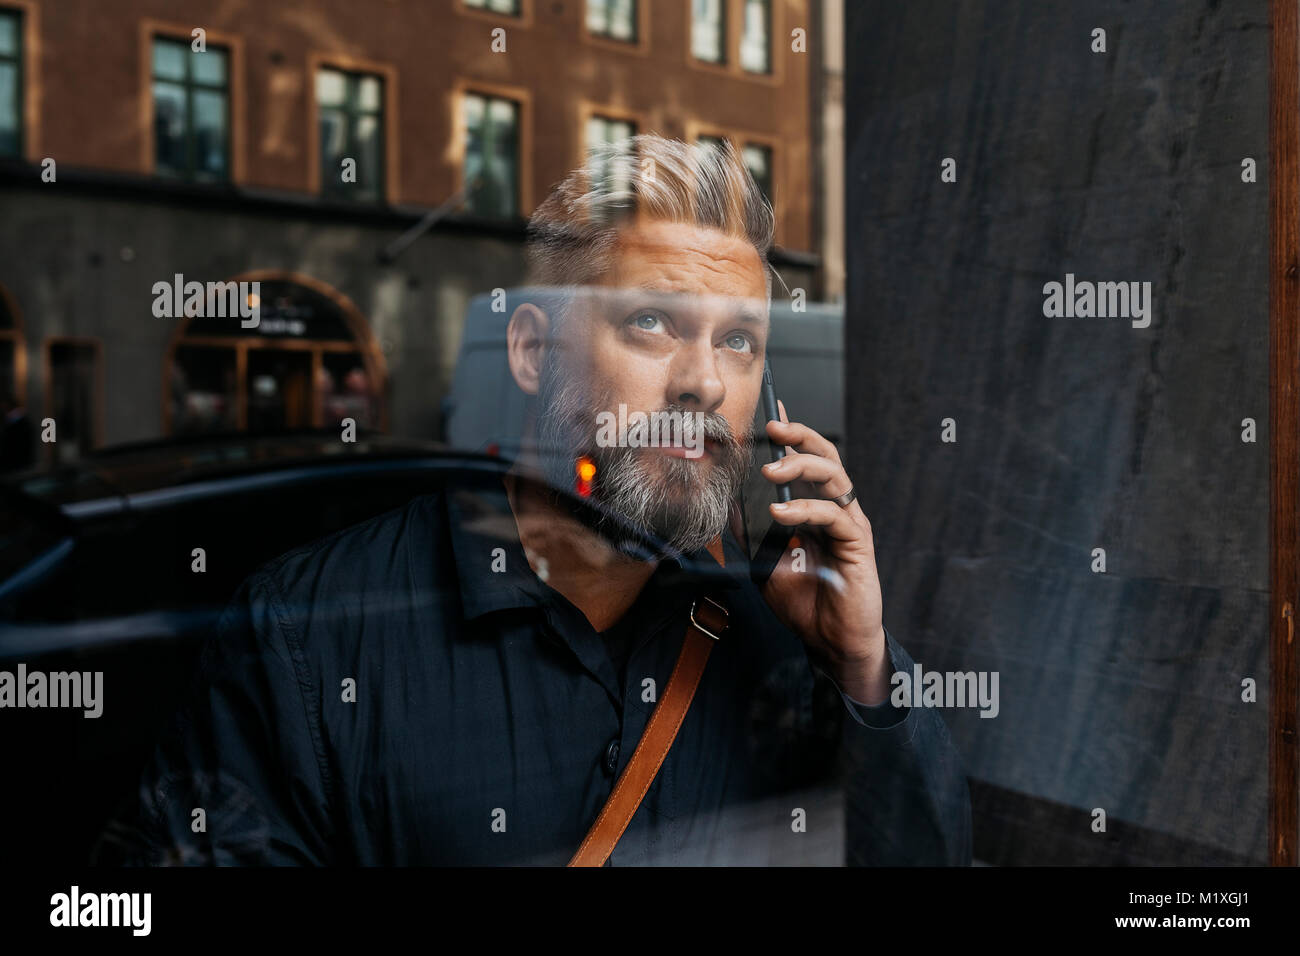 Man on smart phone through window in Sweden - Stock Image